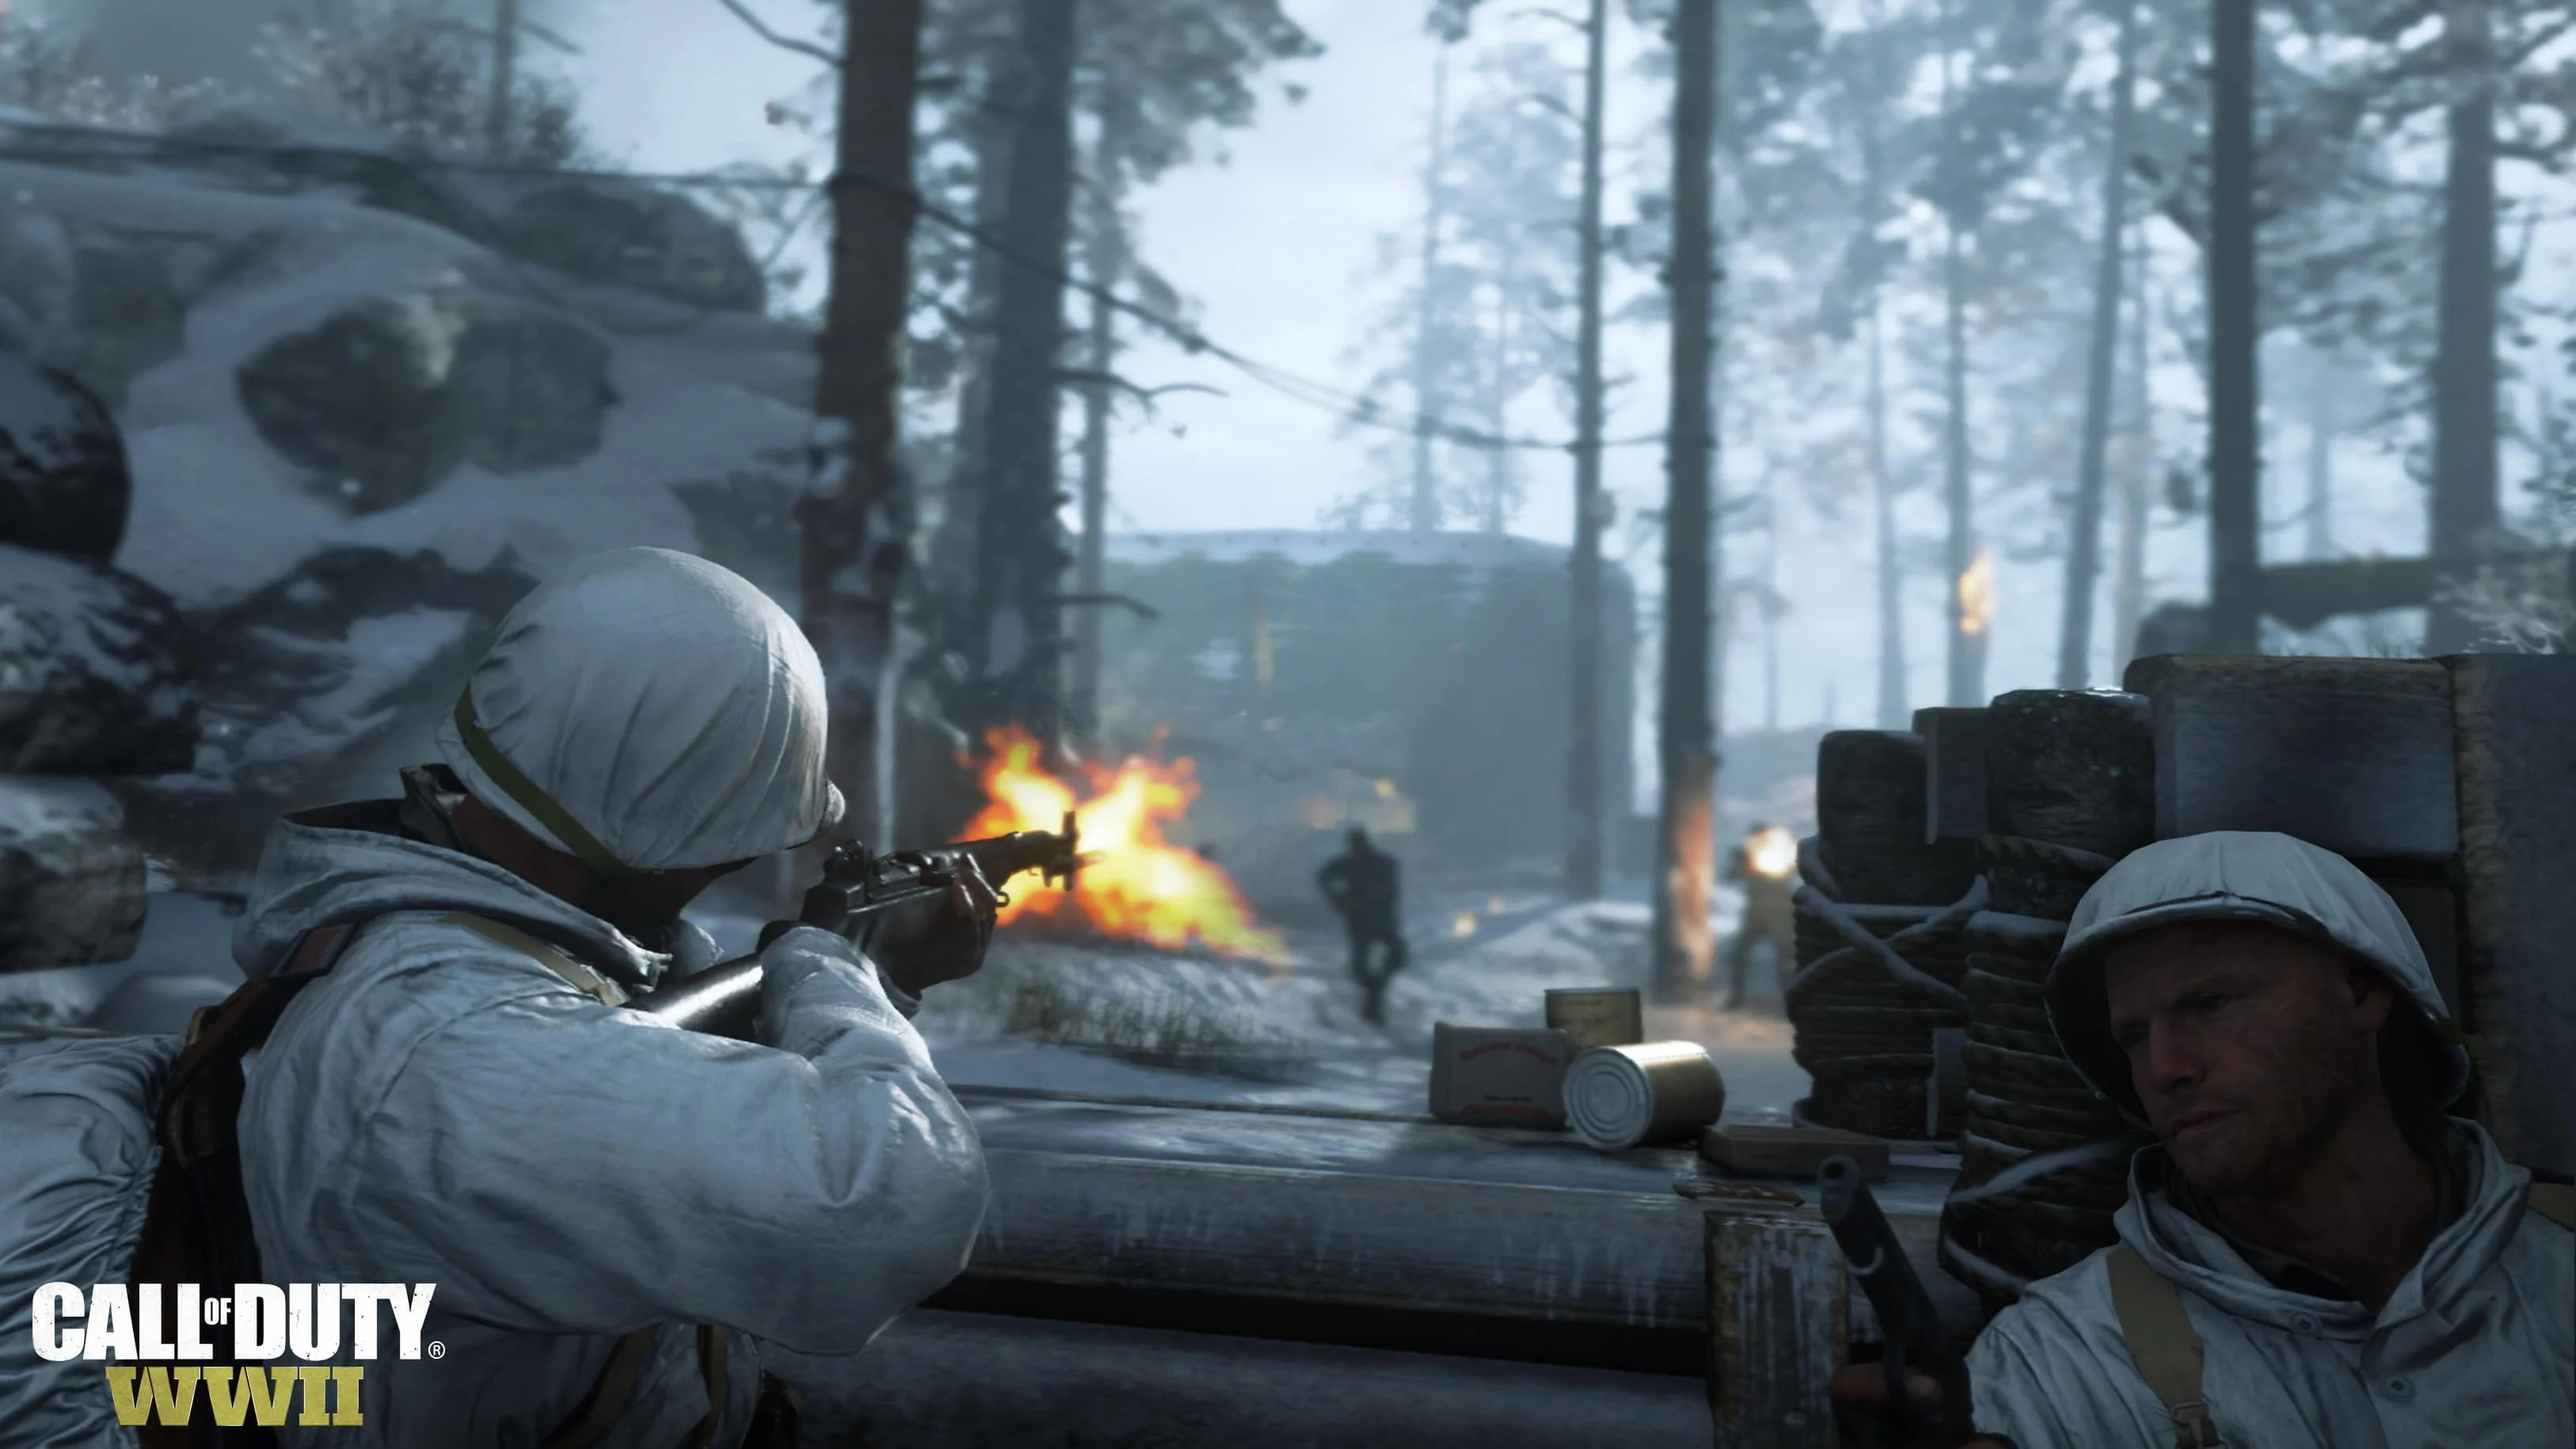 CoD Developer Return To WWII More Exciting To Fans Than